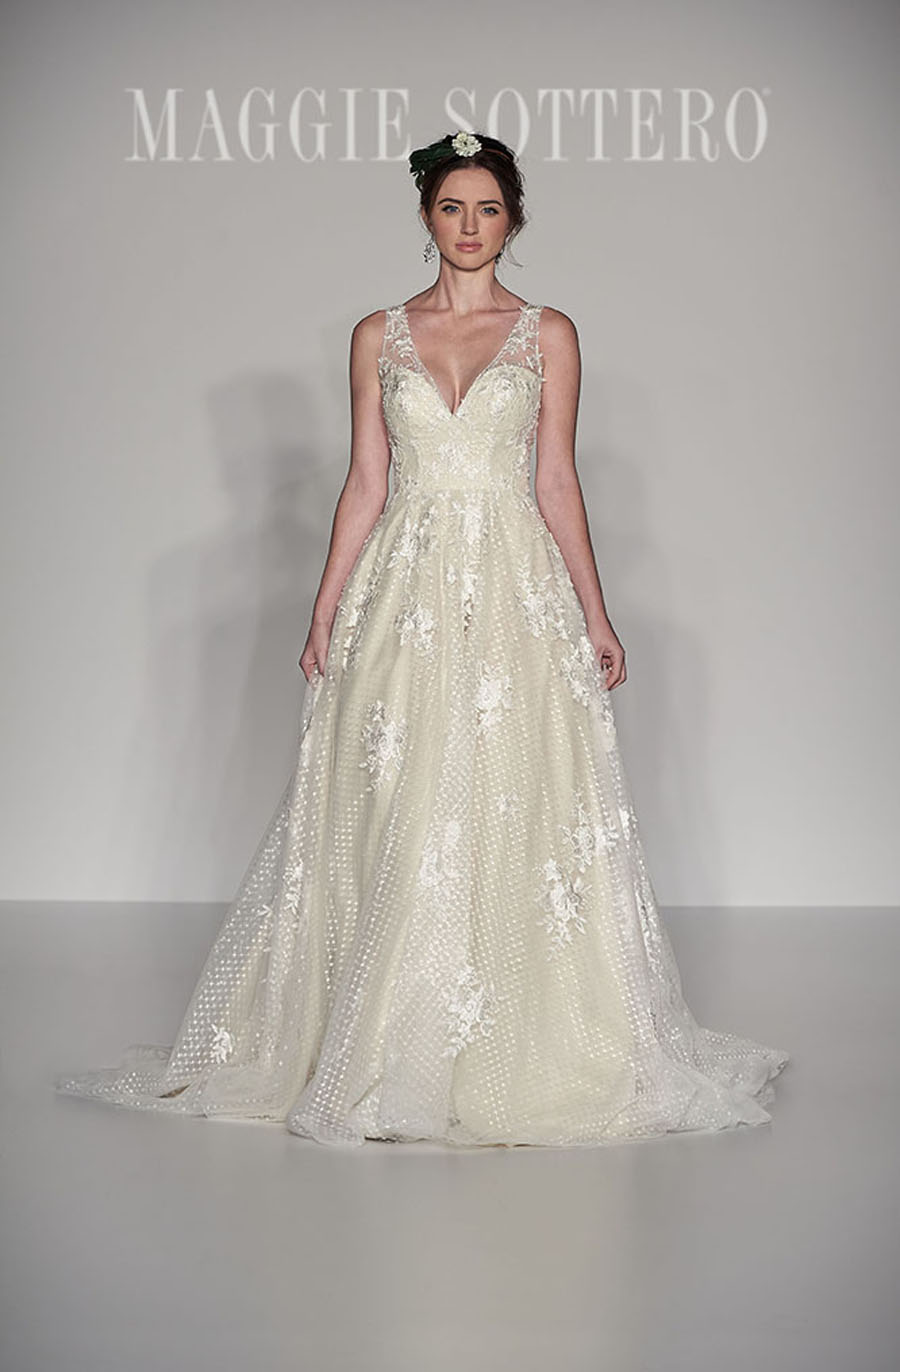 Maggie Sottero Spring 2017 Collection - Meryl Front